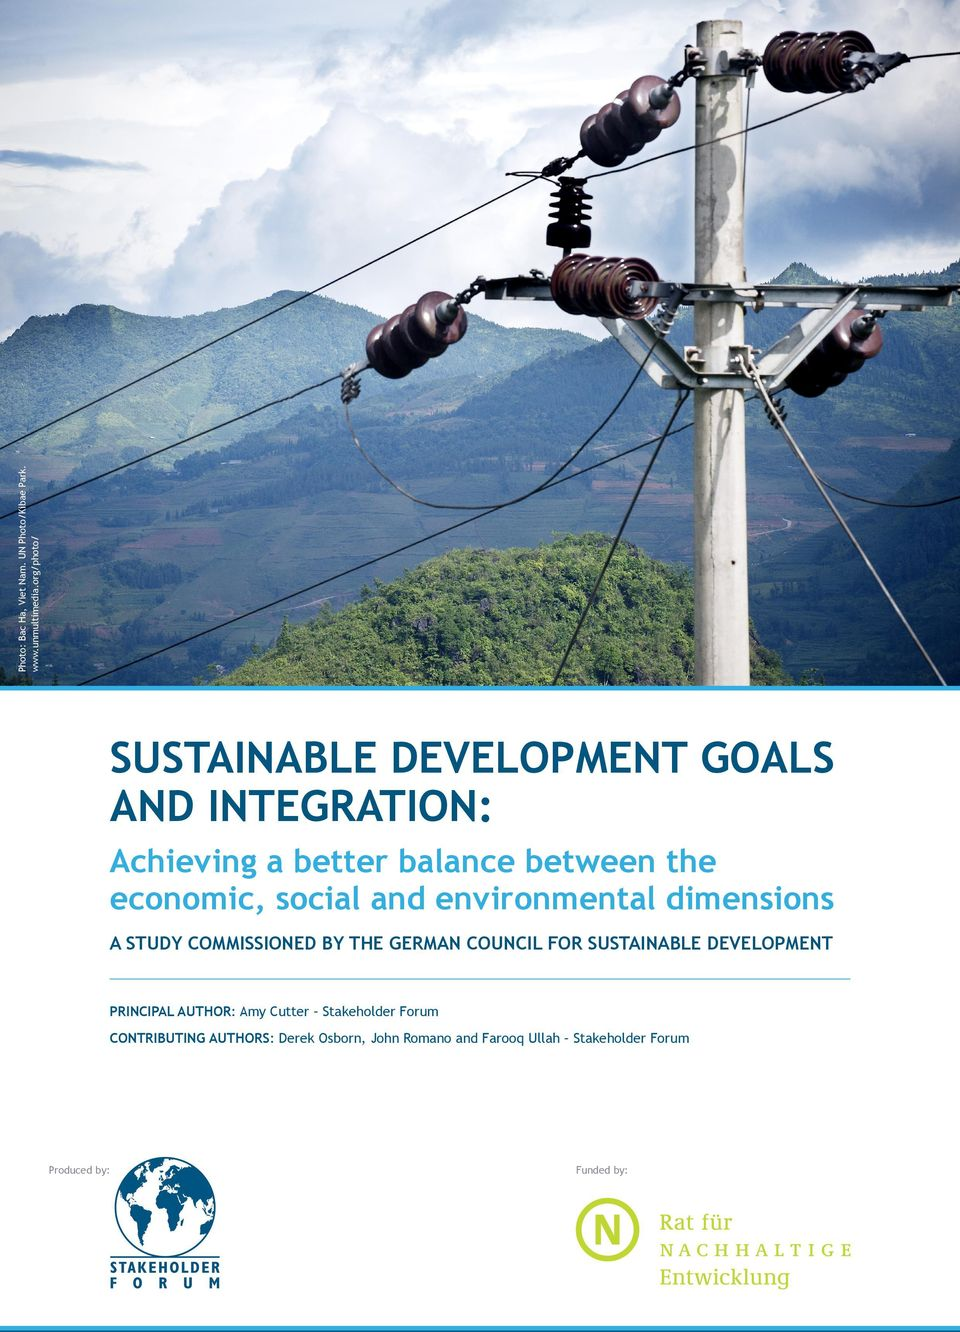 social and environmental dimensions A STUDY COMMISSIONED BY THE GERMAN COUNCIL FOR SUSTAINABLE DEVELOPMENT